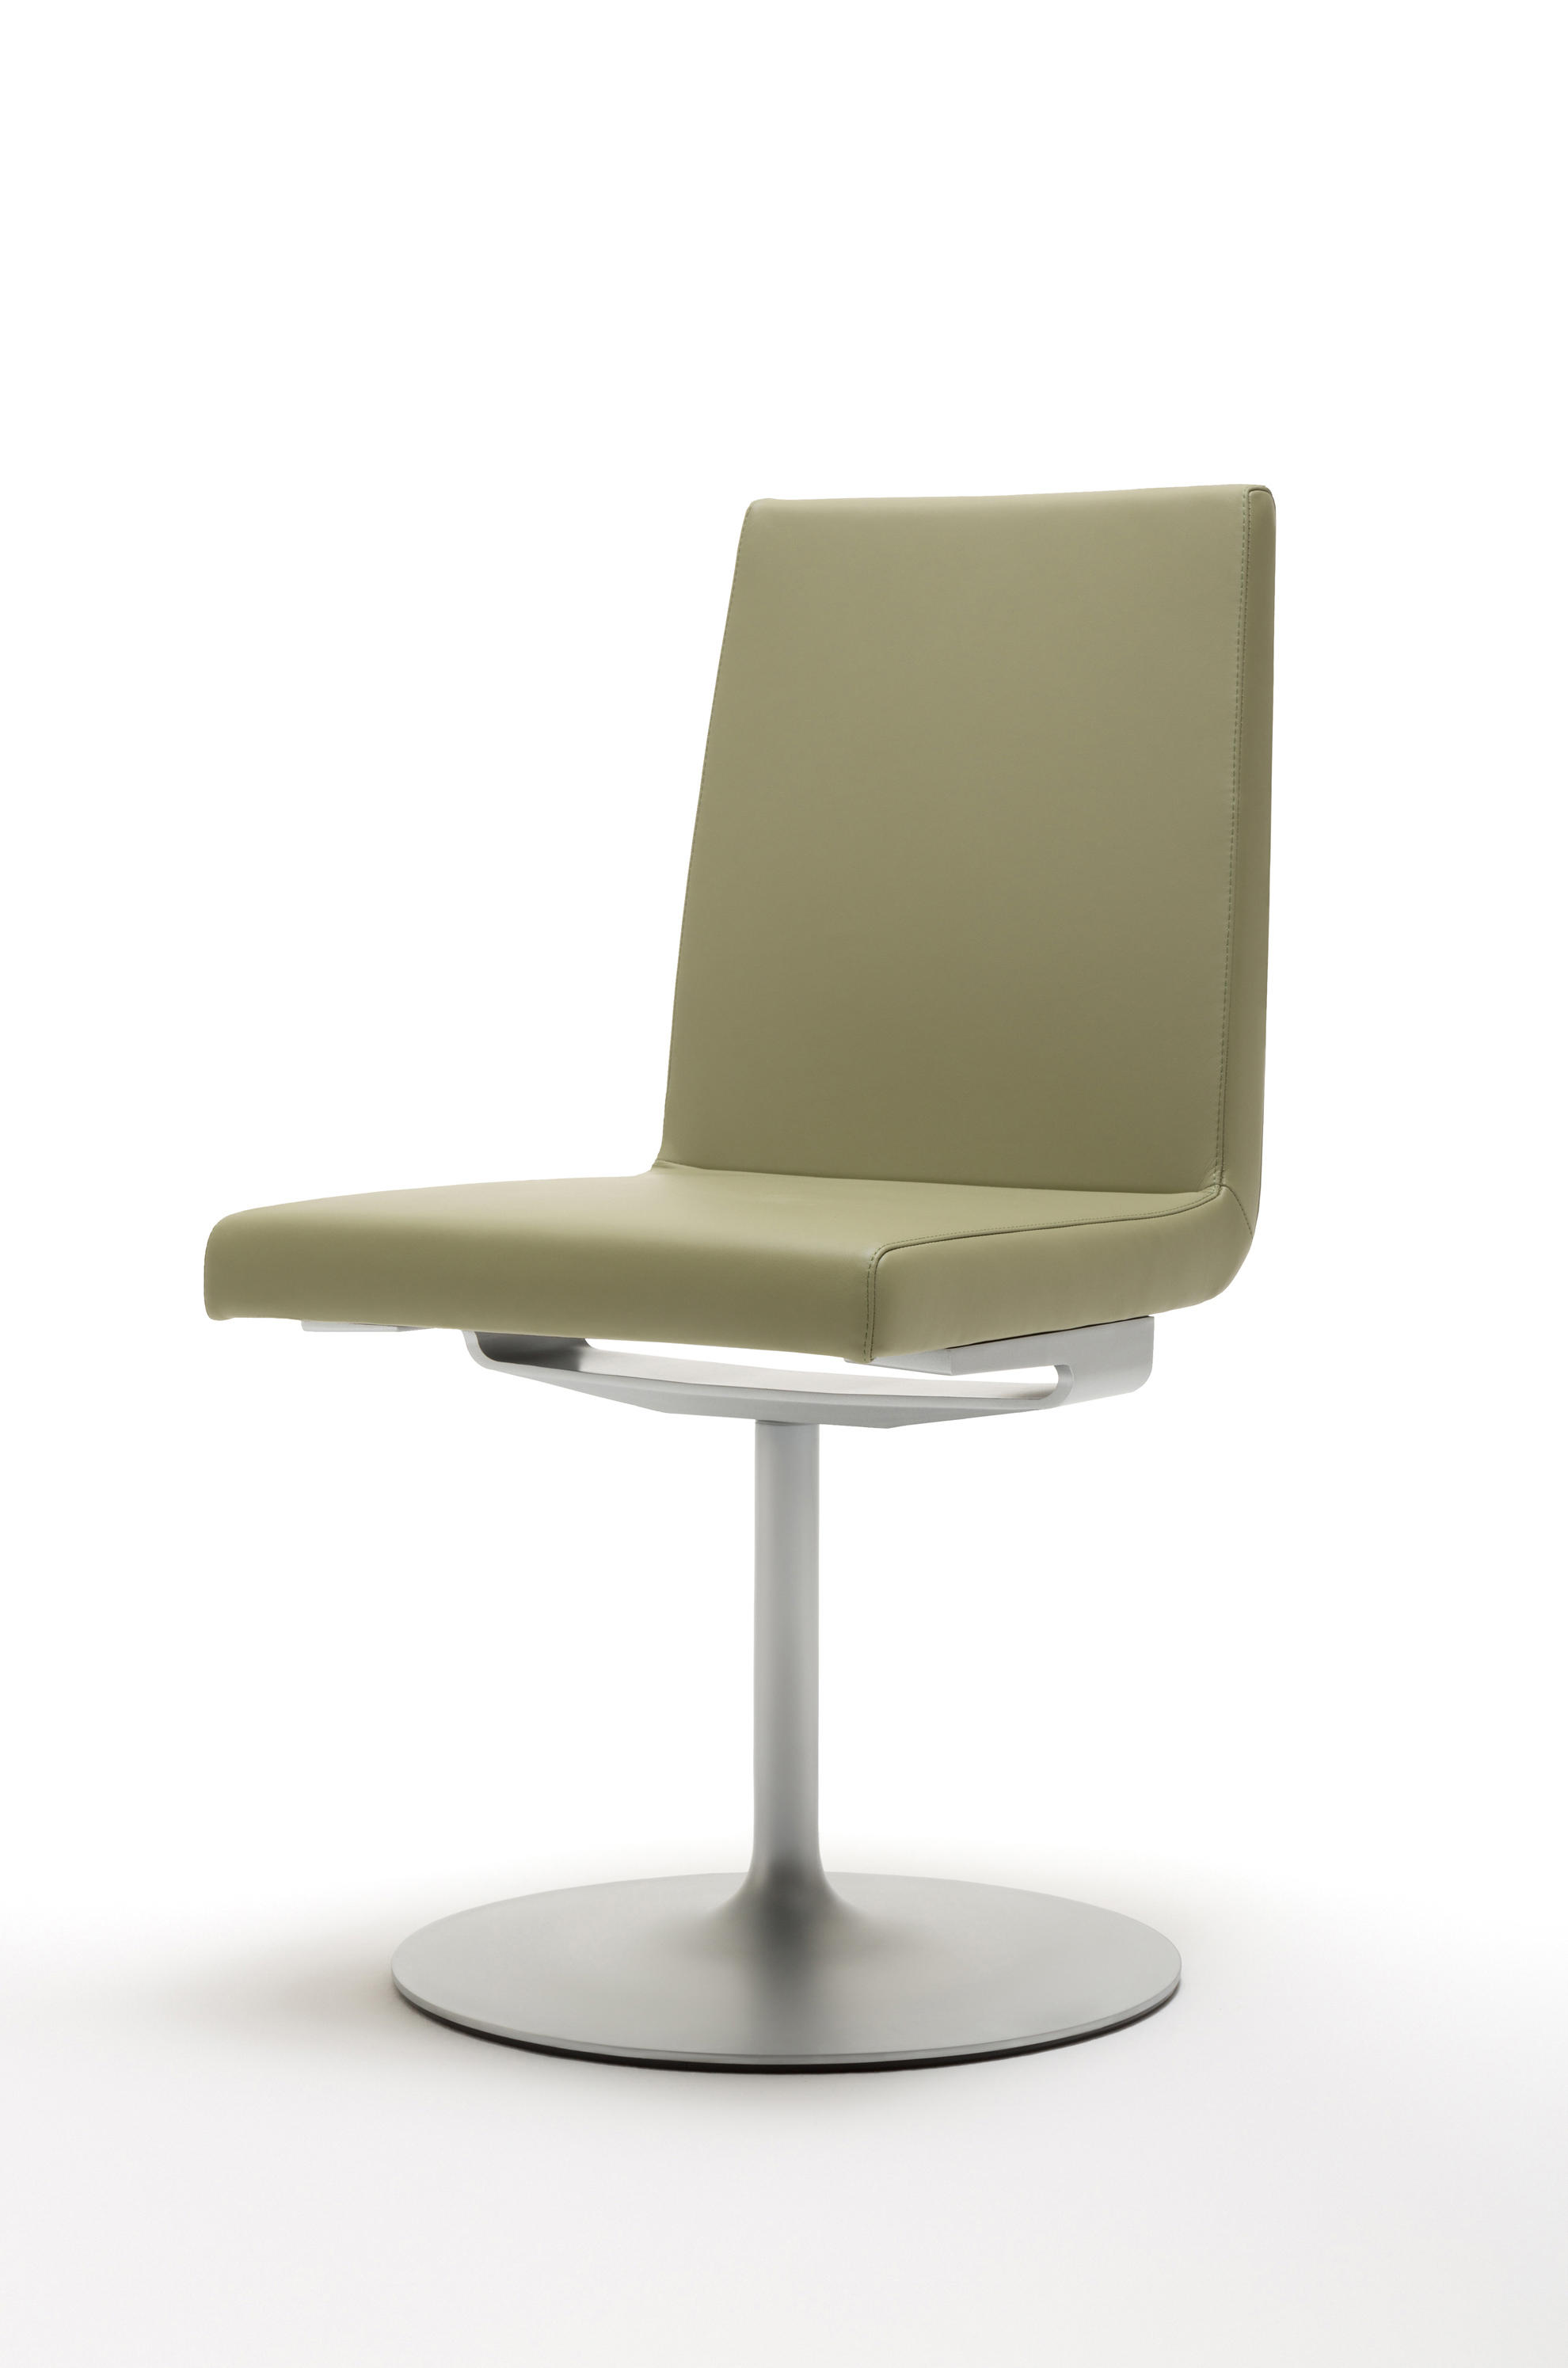 Rolf benz 620 restaurant chairs from rolf benz architonic for Rolf benz 620